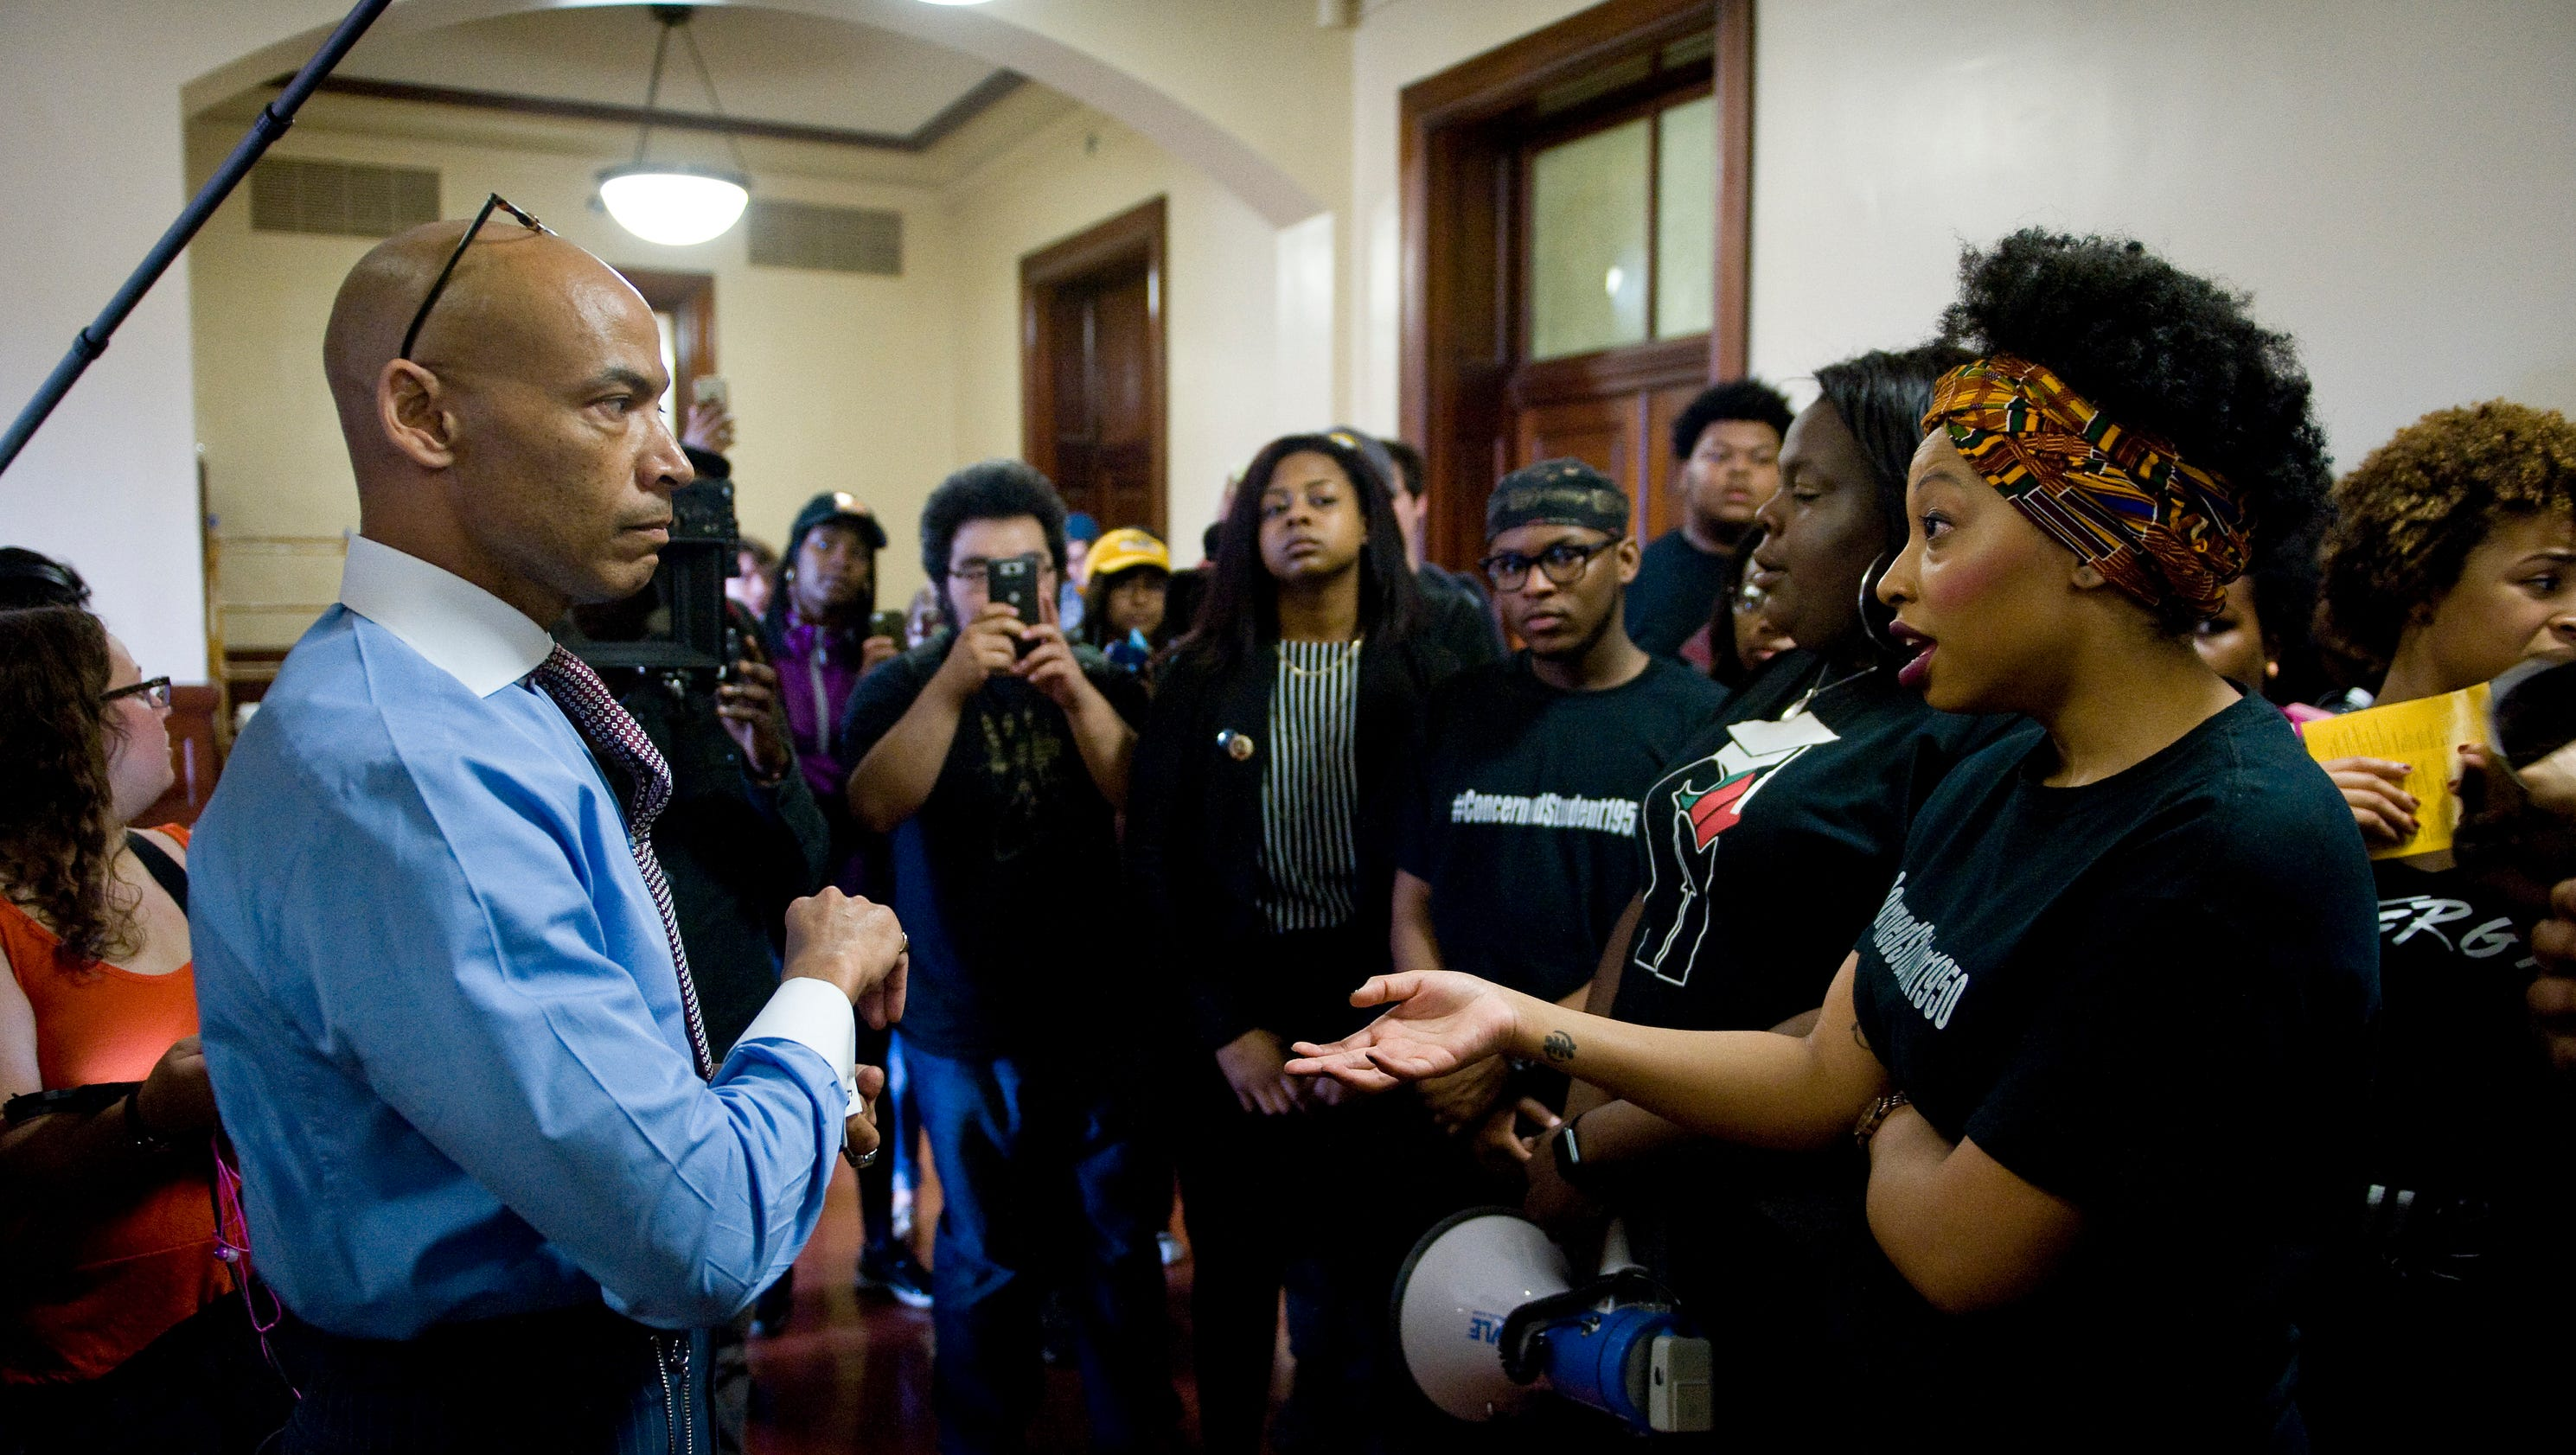 Students speak out against racism on campus